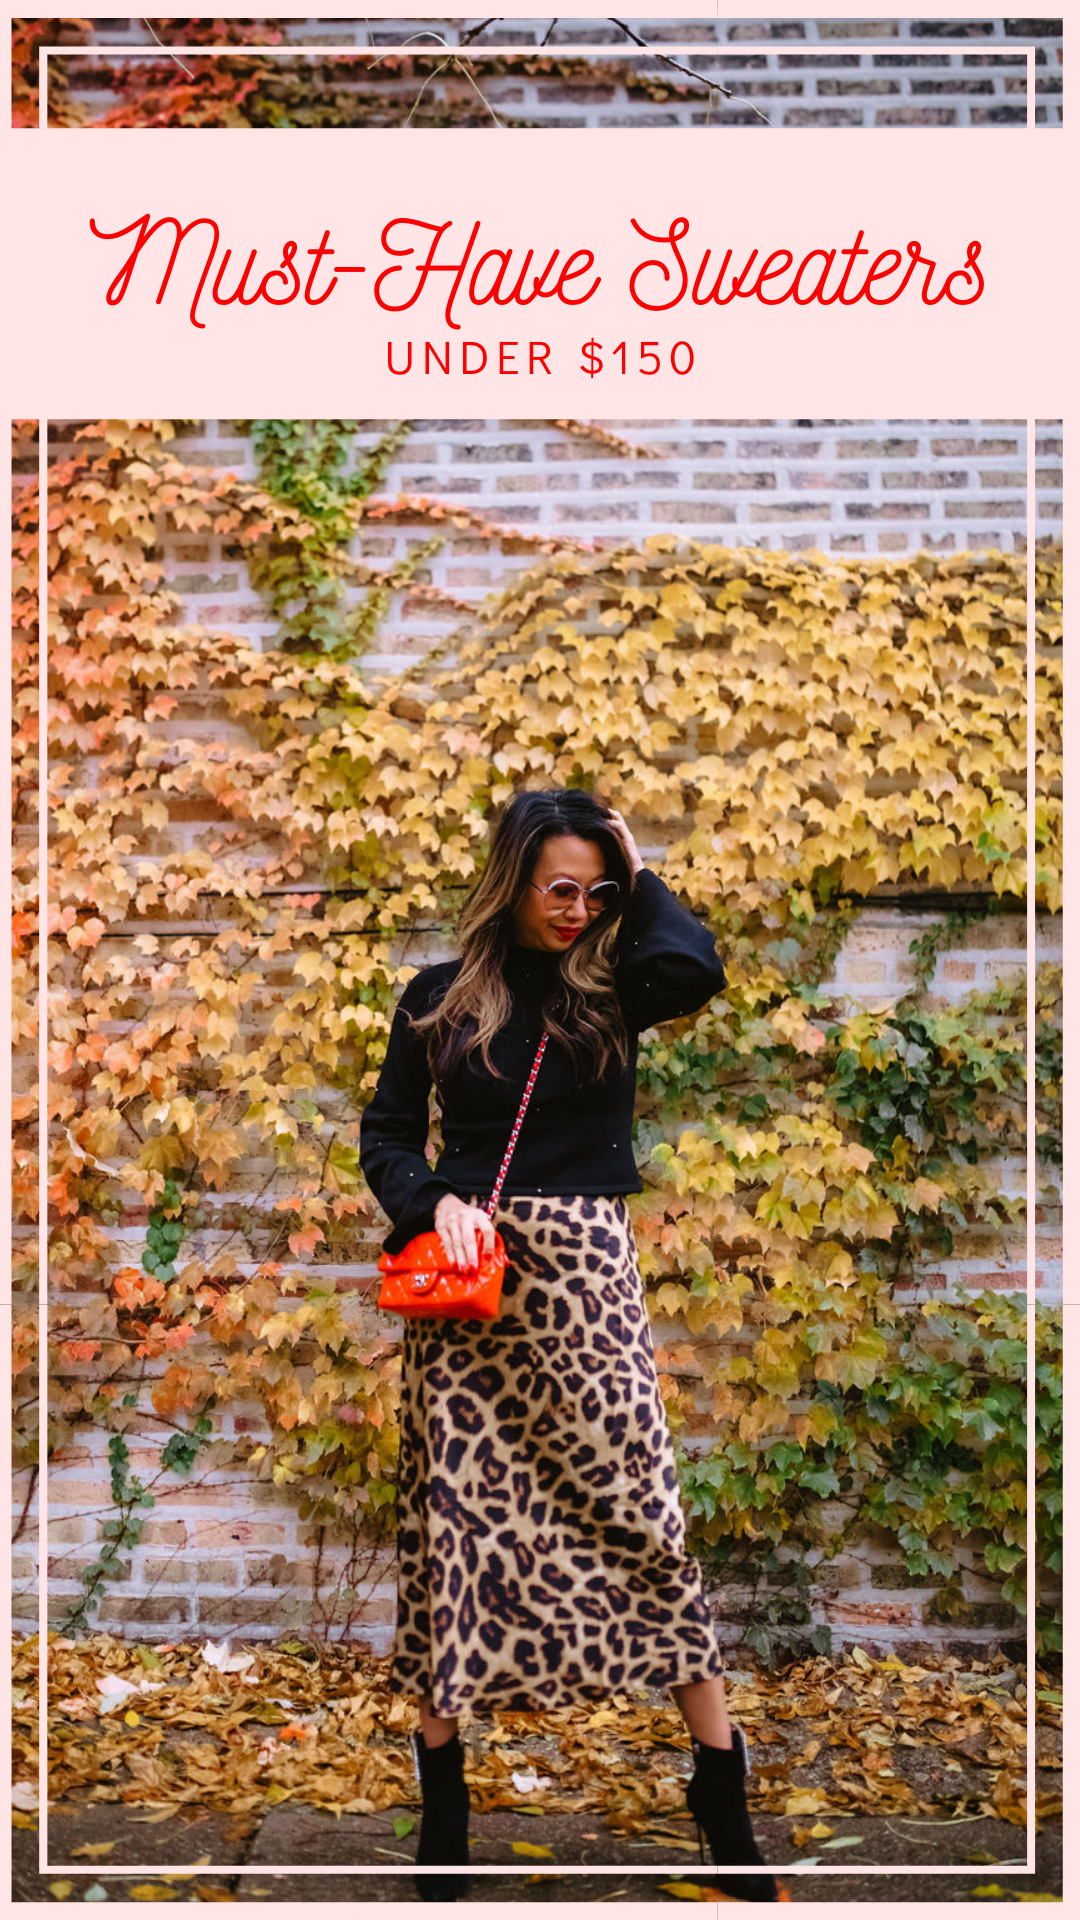 NBD Jeff Sweater, Jennifer Worman, Red Soles and Red Wine, revolve finds under $100, sweaters from revolve all under $100, Fall styles, fall outfit ideas, sweaters under $100, best sweaters under $100, 9 must-have swearters under $100, revolve babe, fall 2019 must haves, fall 2019 style, mom style, chicago blogger